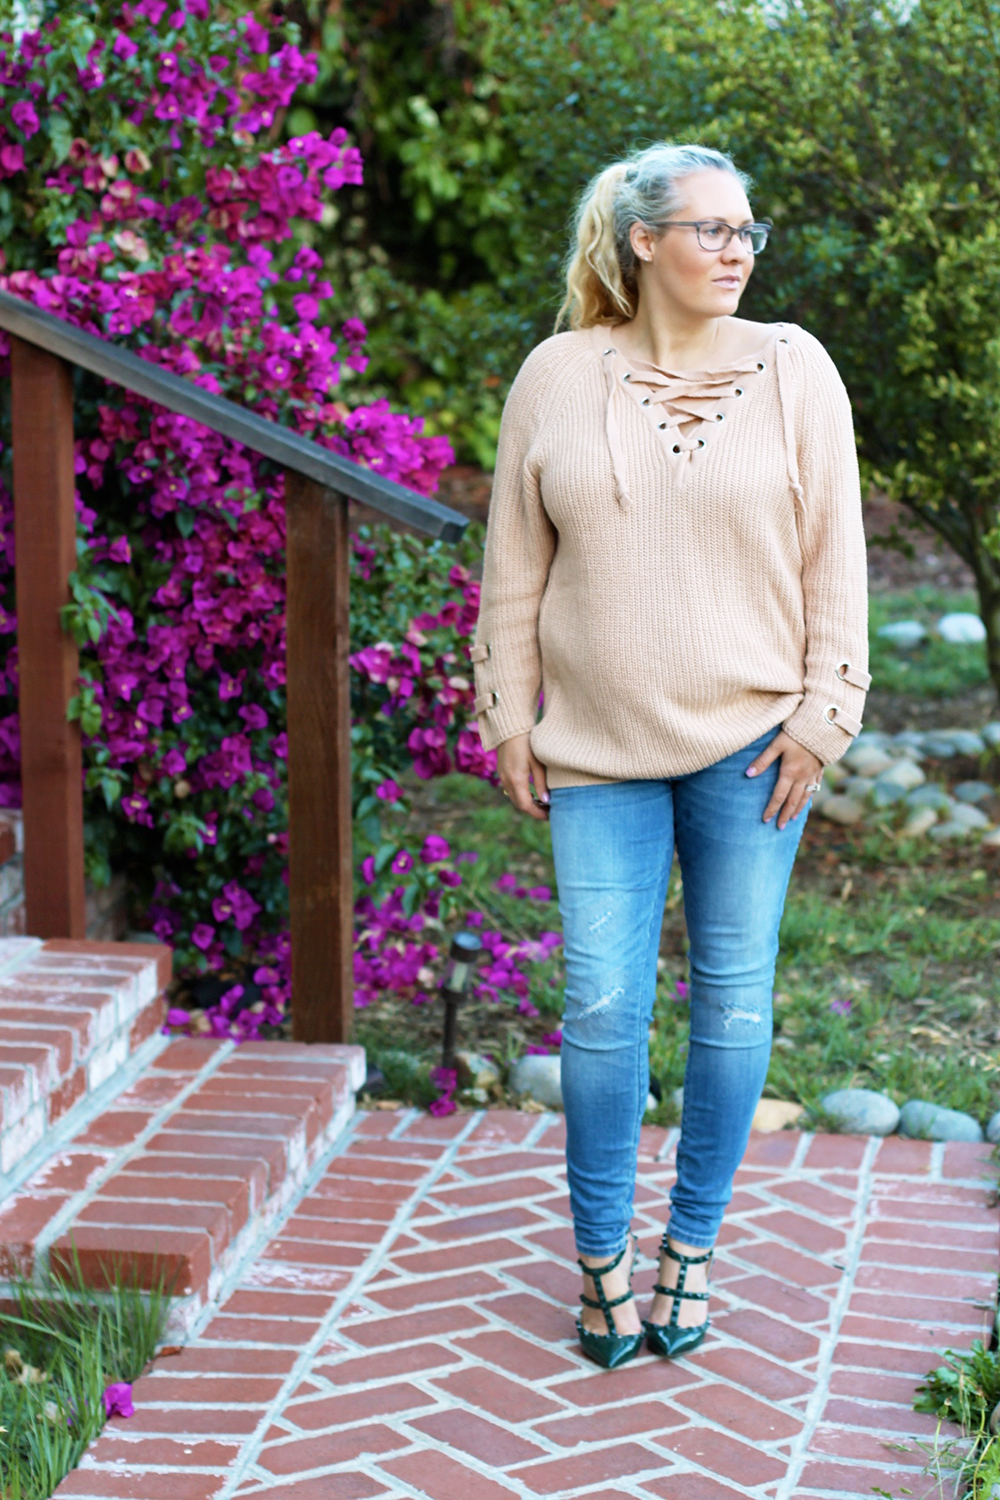 lace-up-sweater-chicwish-outfit-inspiration-mom-style-fashion-blogger-have-need-want